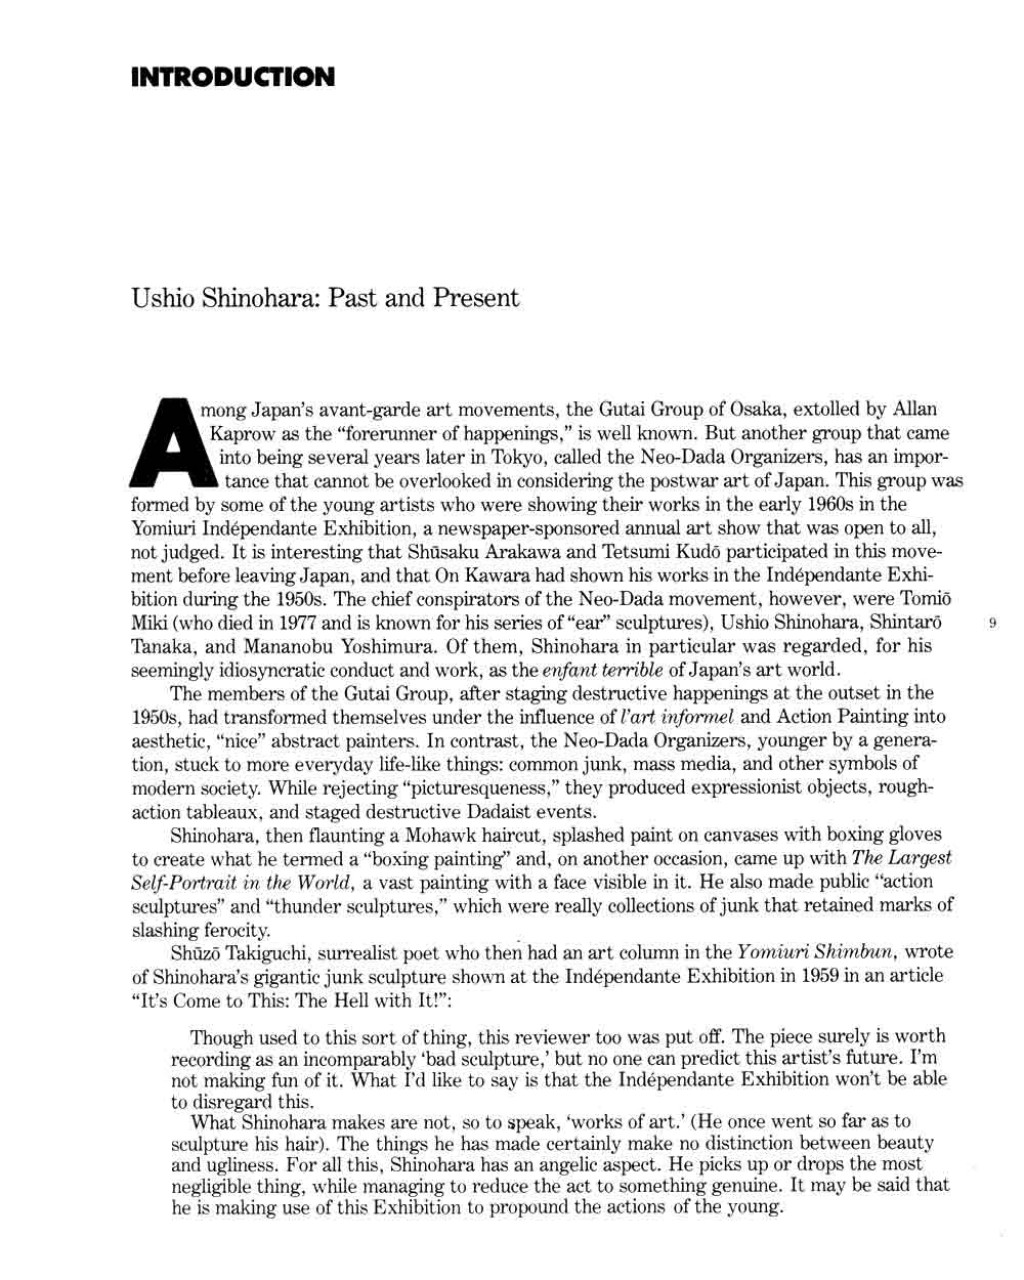 005 How To Cite An Essay Example Ushio Shinohara Past And Present Pg 1 Archaicawful In A Textbook Within Book Apa Mla 8 Large